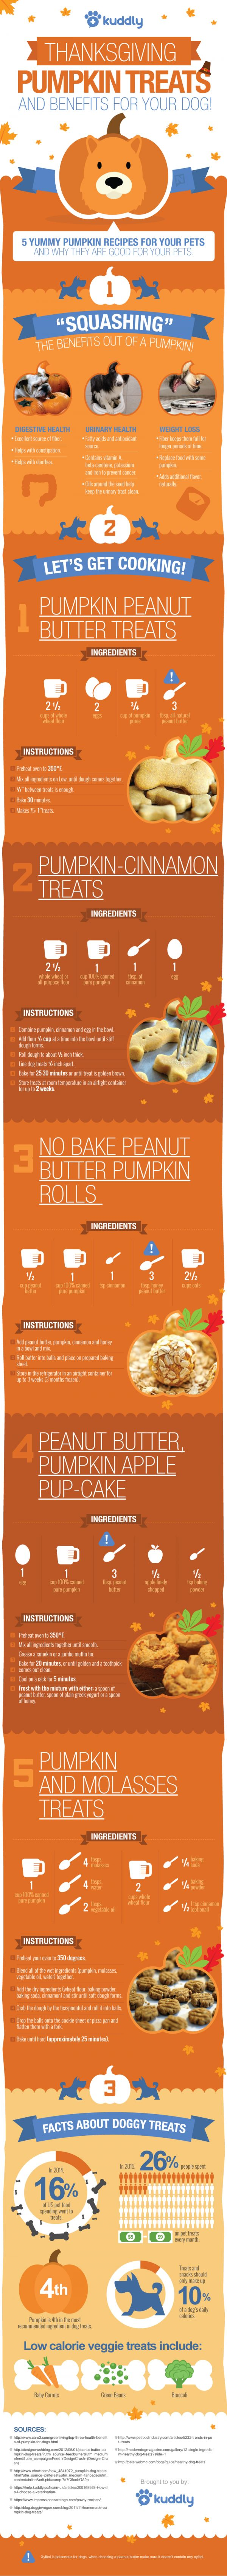 Thanksgiving Pumpkin Treats and Benefits For Your Dog!